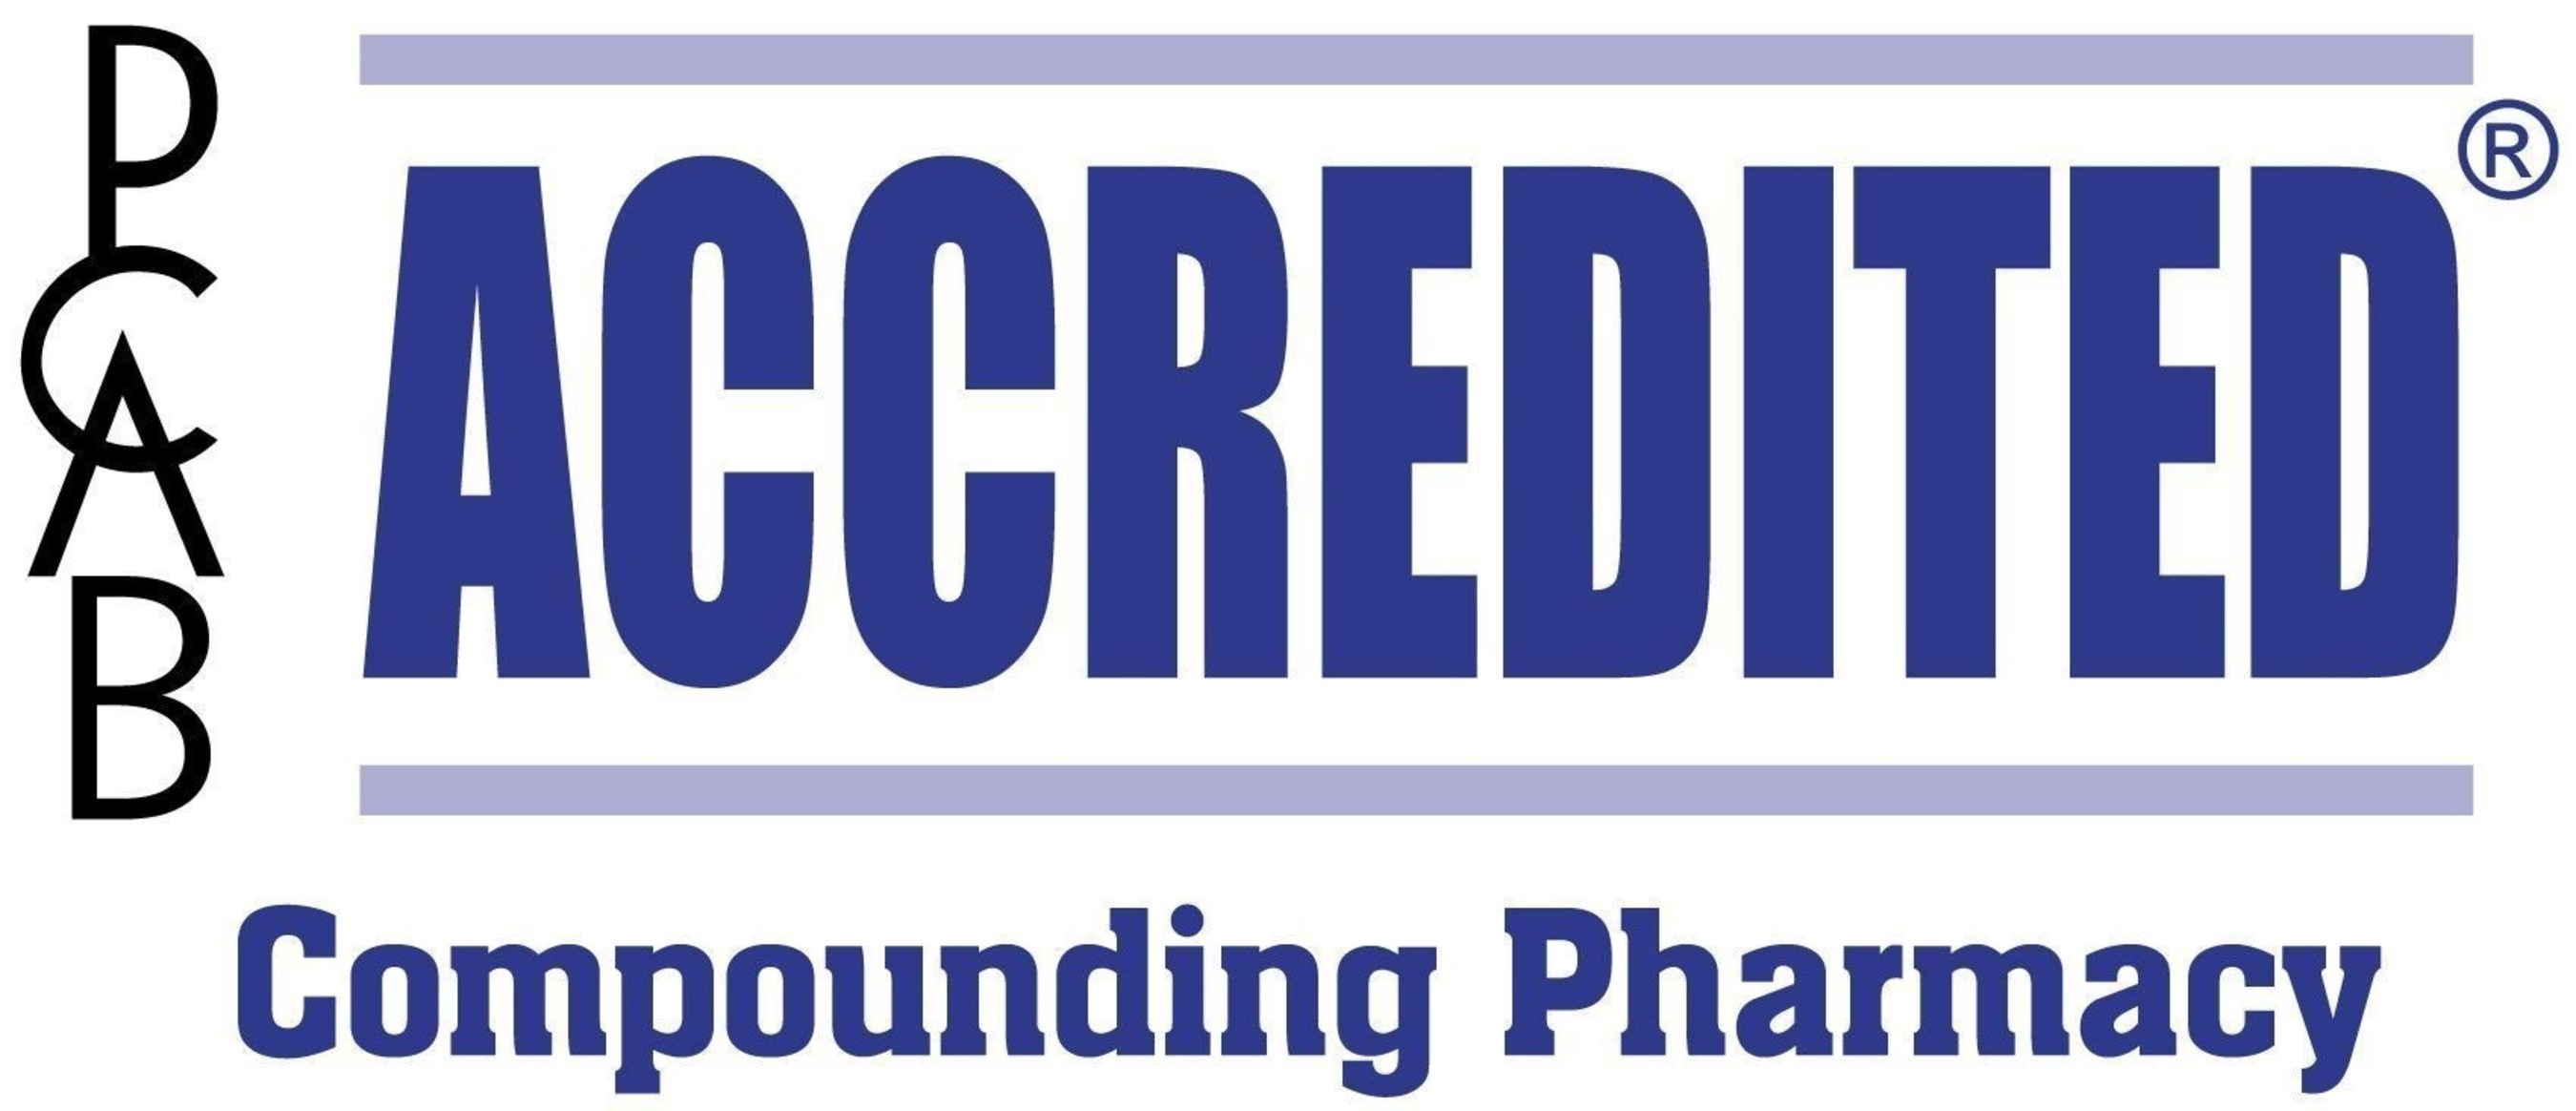 Harbor Compounding Pharmacy Receives Accreditation From PCAB National Board